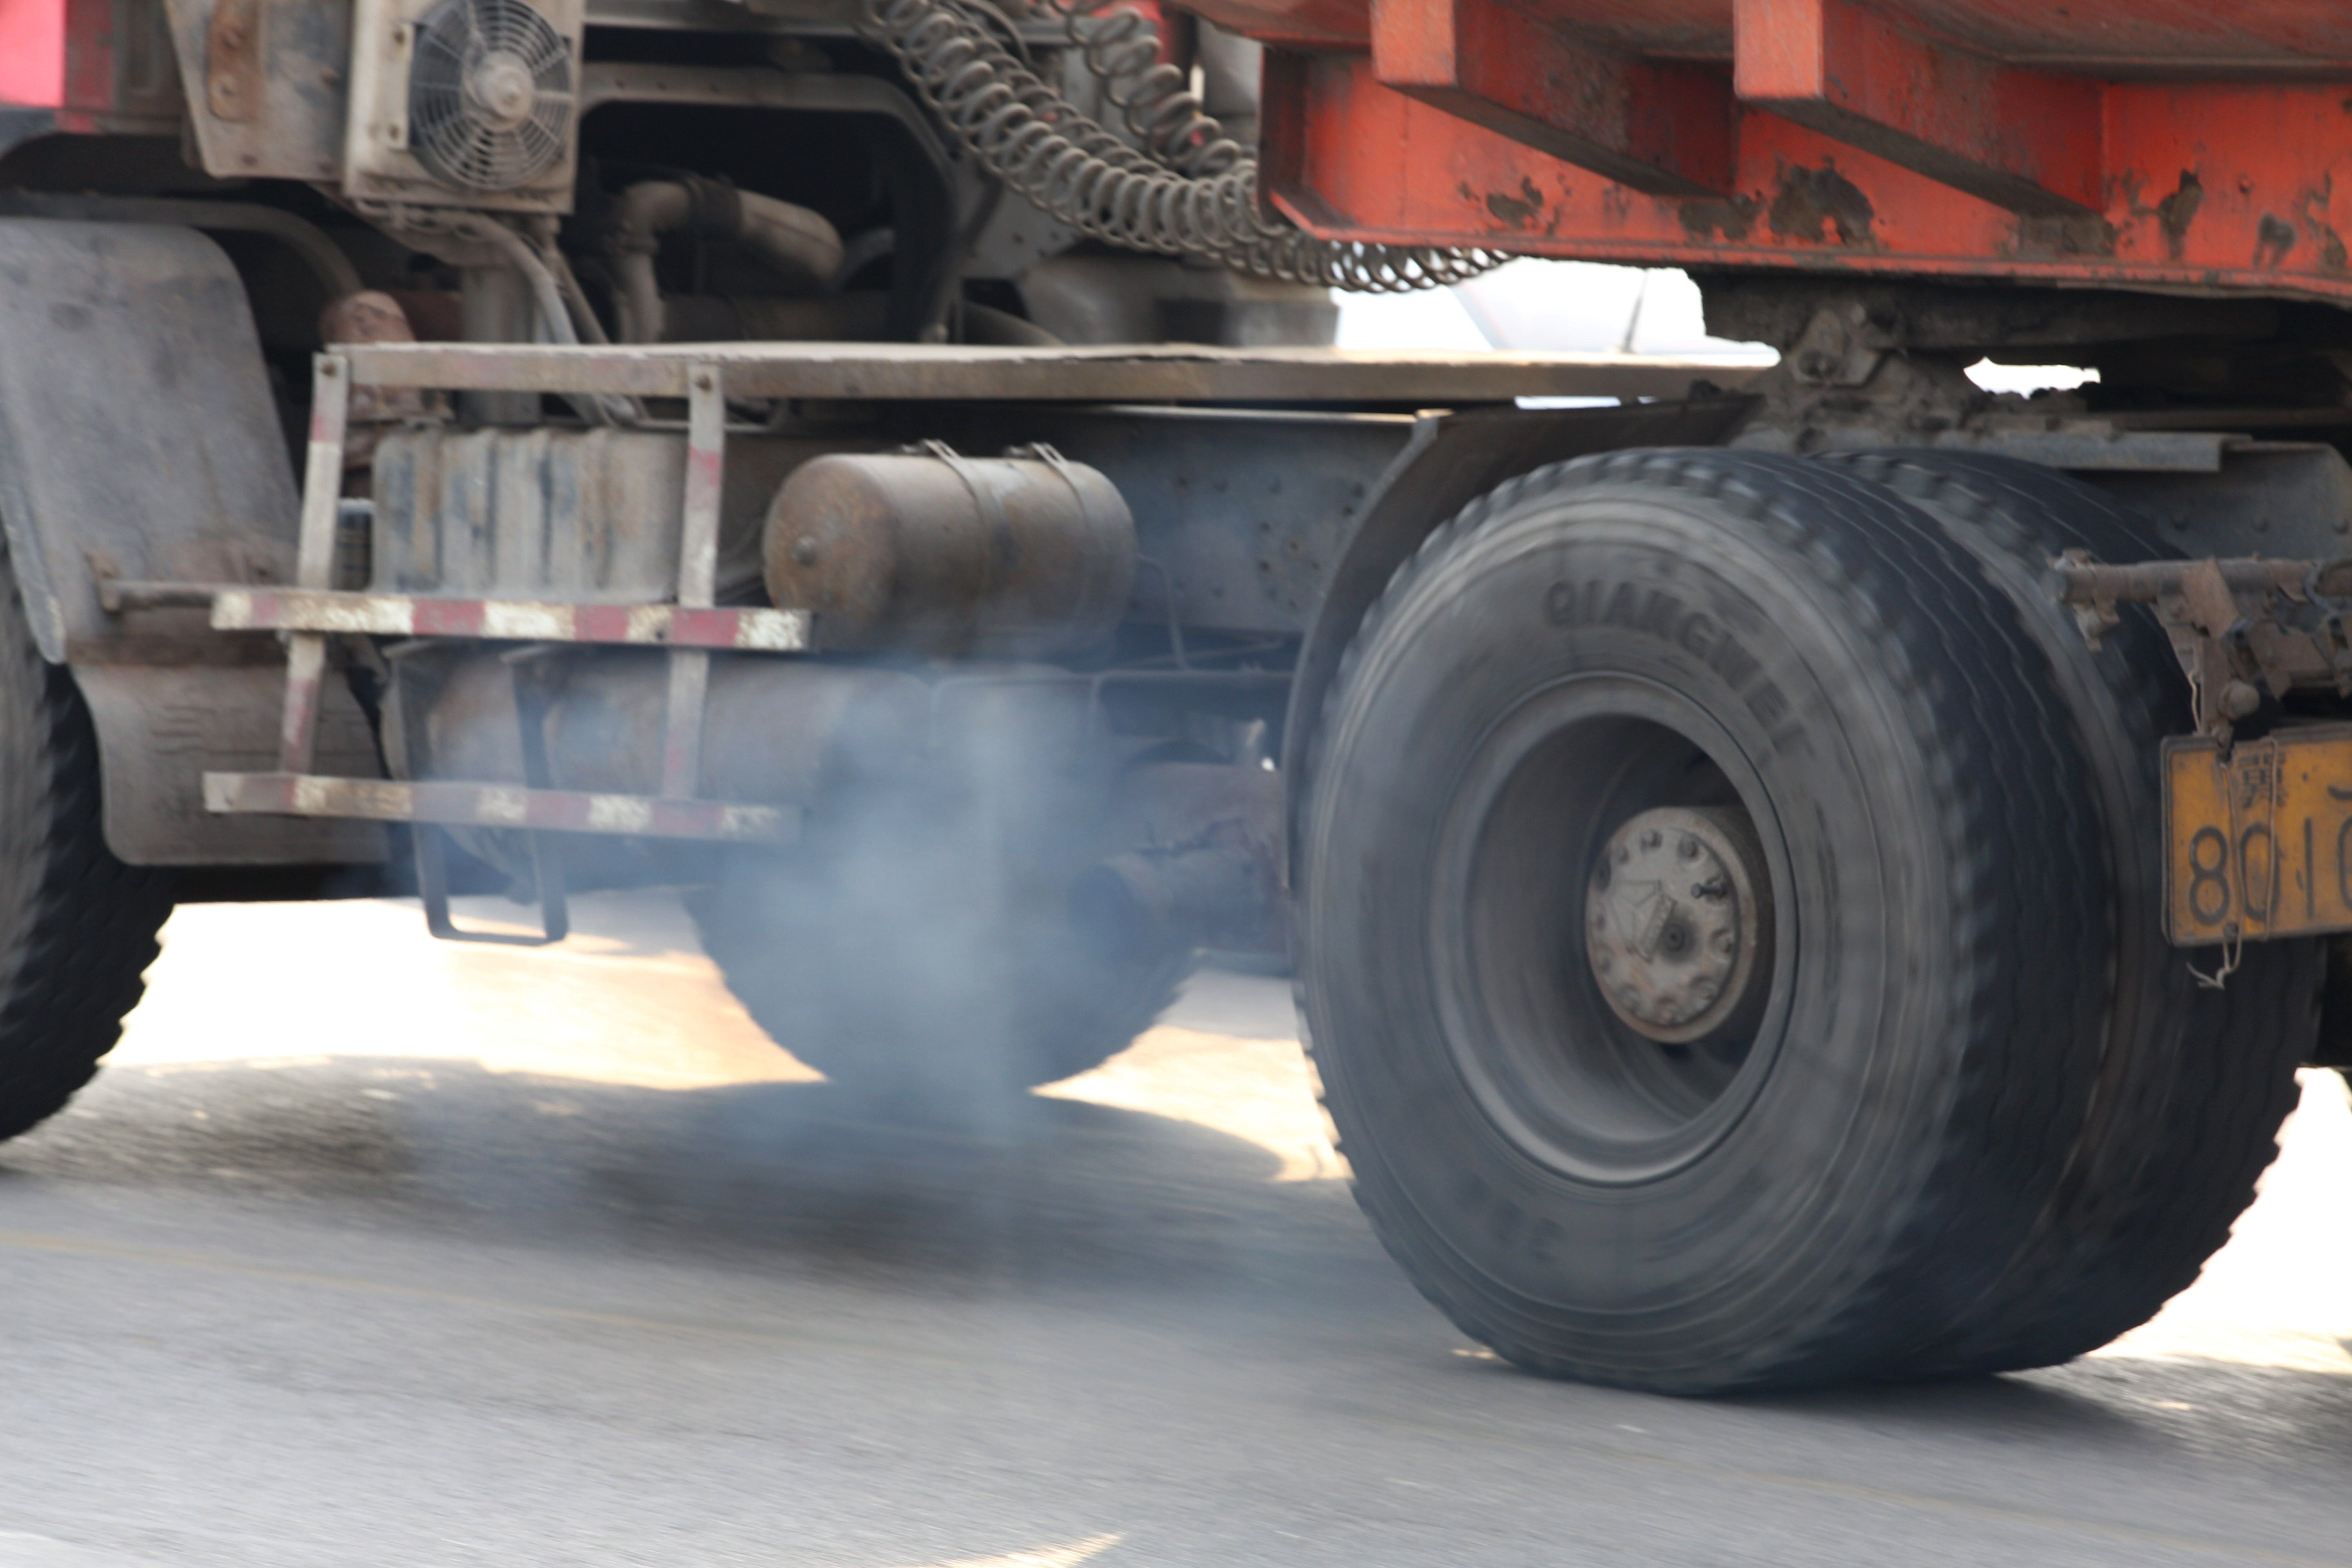 New knowledge about copper-zeolite catalysts for diesel emissions